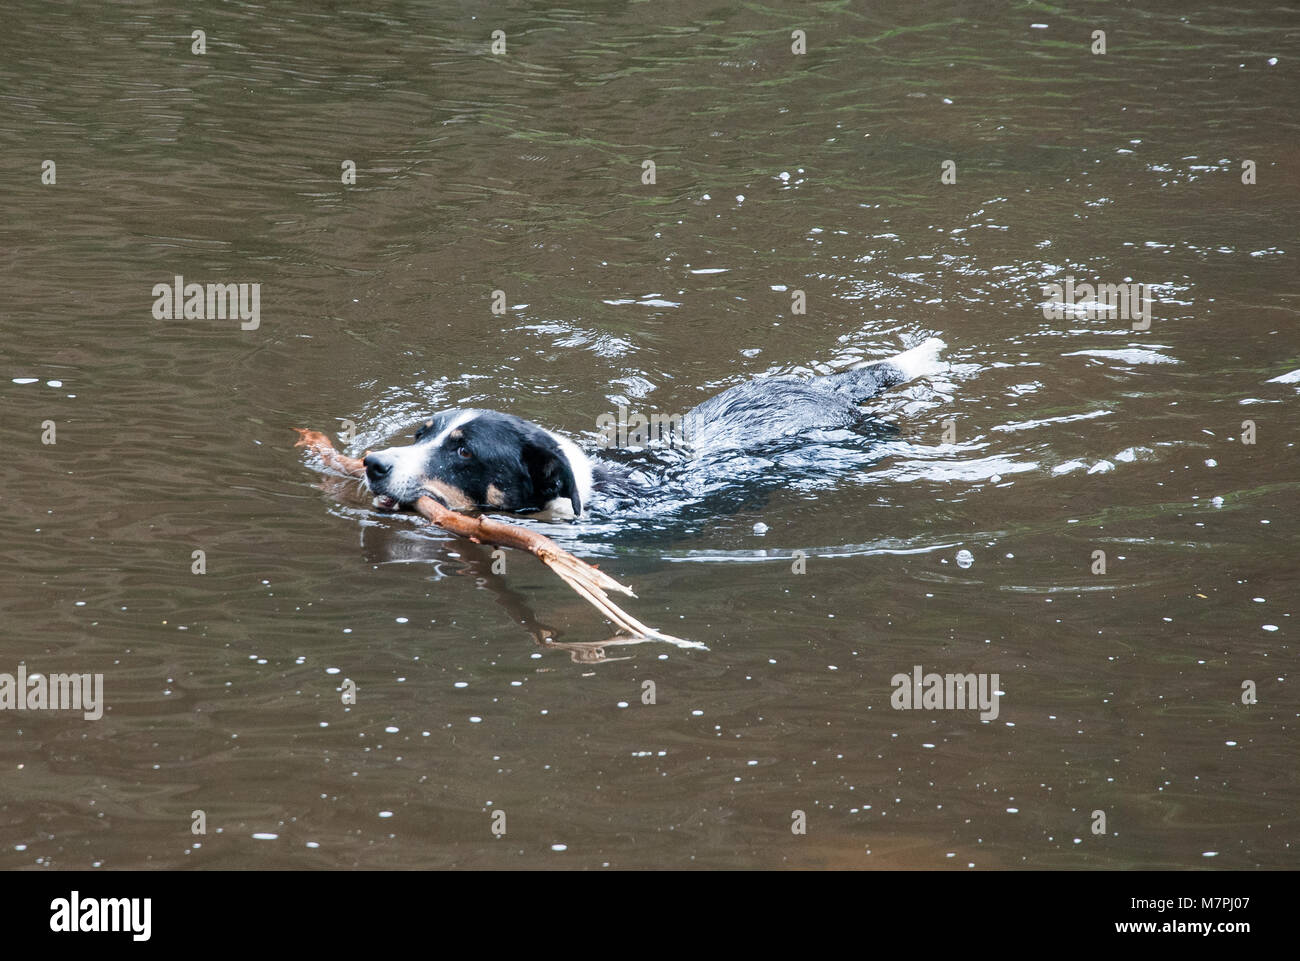 A dog retrieves a branch that has been thrown into the Yarra River at Warrandyte, Melbourne, Australia - Stock Image